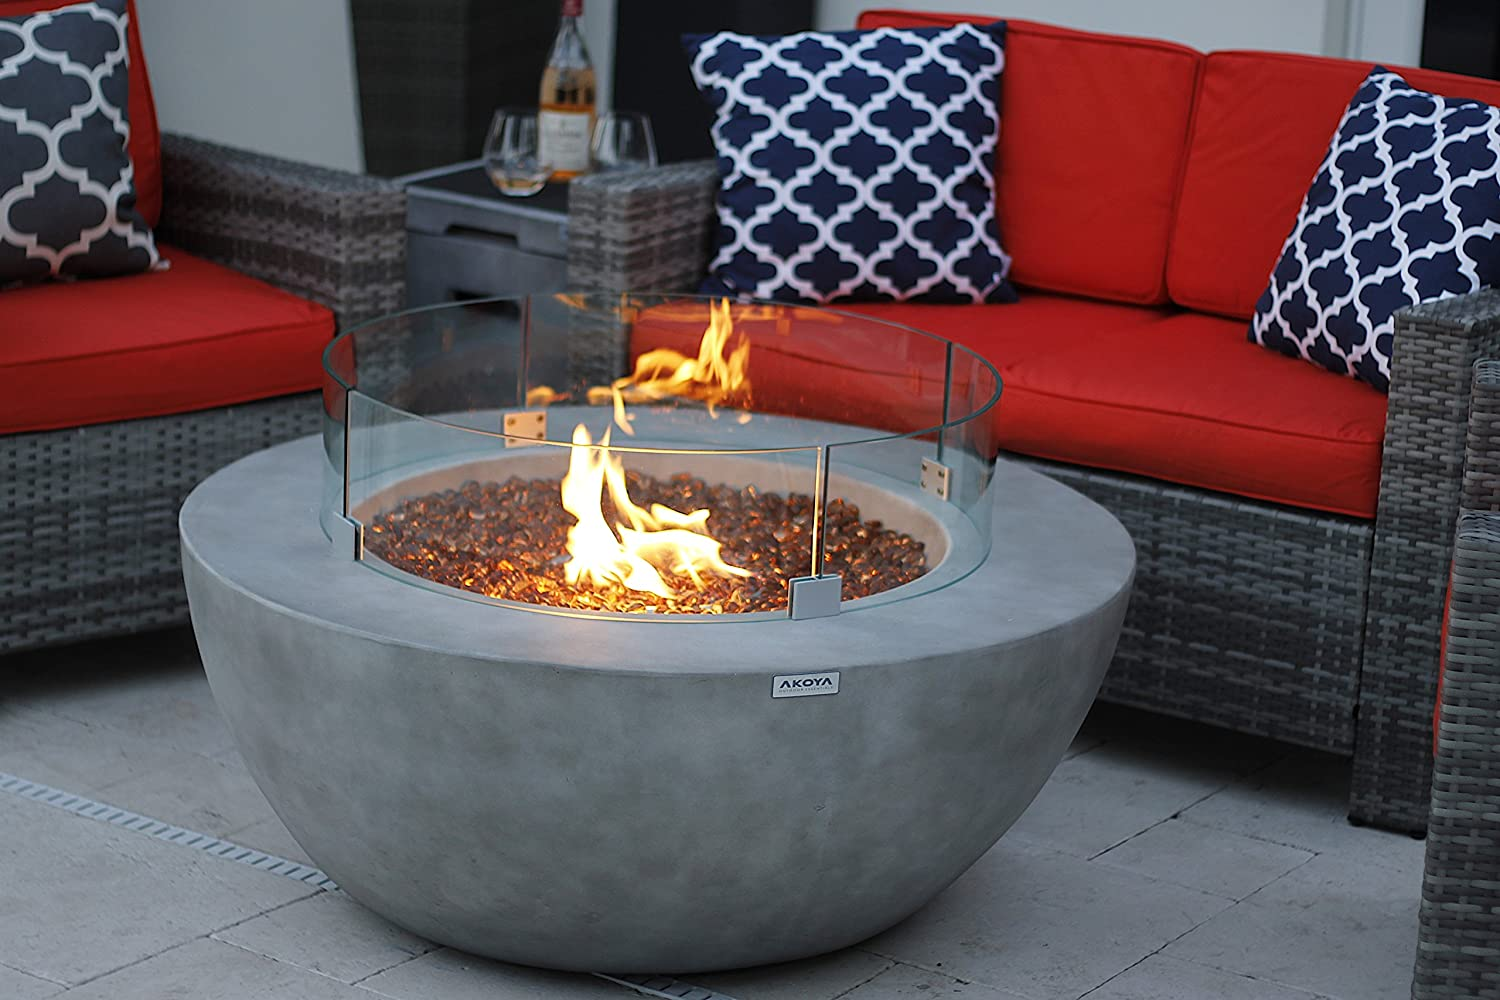 AKOYA Outdoor Essentials 42 Modern Concrete Fire Pit Table Bowl w Glass Guard and Crystals in Gray Clear Crystals